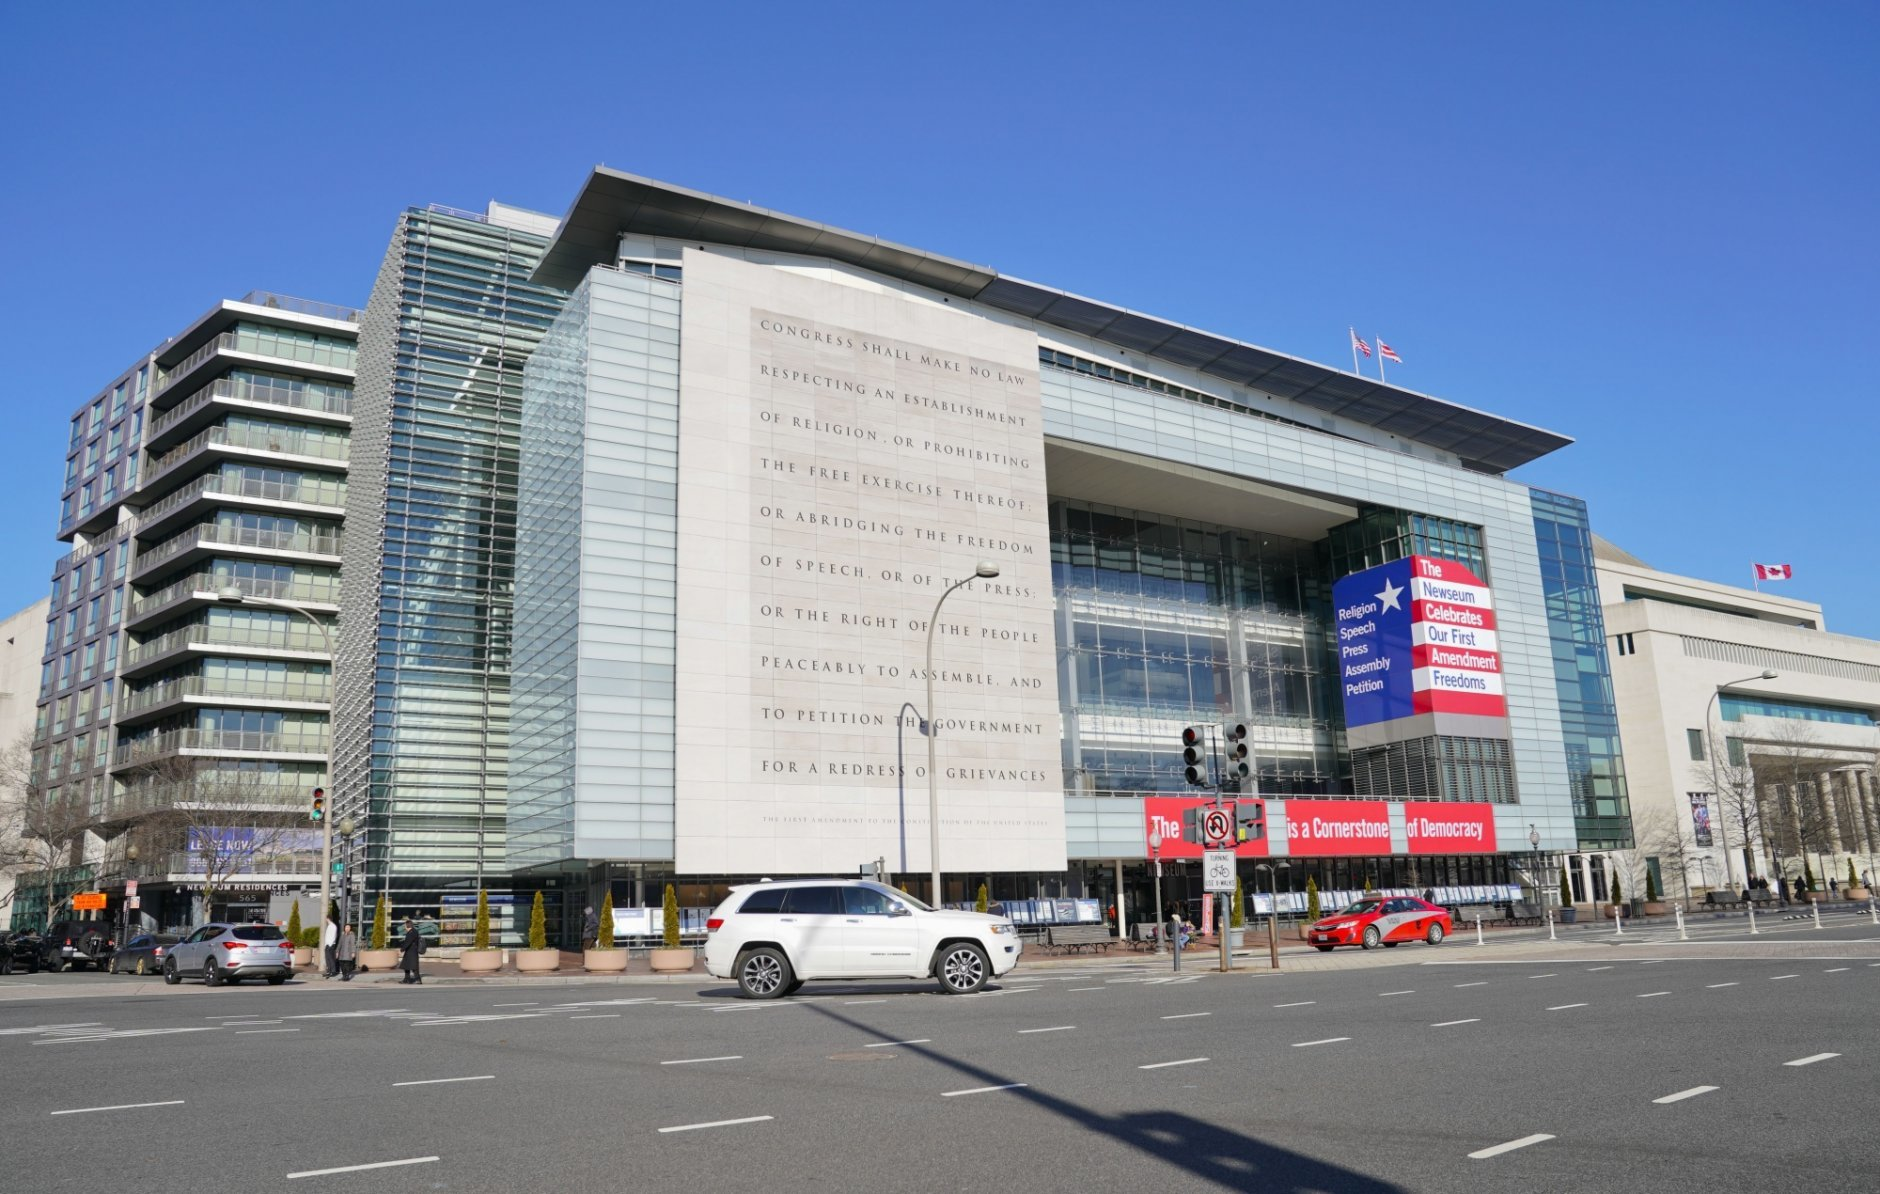 """<p><strong>Beat the Newseum deadline</strong></p> <p>This fall and winter is your last chance to visit the Newseum, the museum dedicated to honoring and celebrating the role of journalists and a free press.</p> <p>Current exhibits also include &#8220;Rise Up: Stonewall and the LGBT Rights Movement&#8221; and &#8220;Seriously Funny: From the Desk of &#8216;The Daily Show with Jon Stewart.'&#8221;</p> <p>You can also take in Pulitzer Prize-winning photos, pieces of the Berlin Wall — even WTOP reporter Neal Augenstein&#8217;s iPhone 4S, which showcases how technology has revolutionized the practice of news gathering.</p> <p>Admission to the museum, located on an iconic stretch of Pennsylvania Avenue, does carry a price tag — about $25 for adults and $15 for kids 7 and up. There may be discount codes <a href=""""https://www.newseum.org/visit/"""" target=""""_blank"""" rel=""""noopener"""">offered on the website</a>.</p>"""